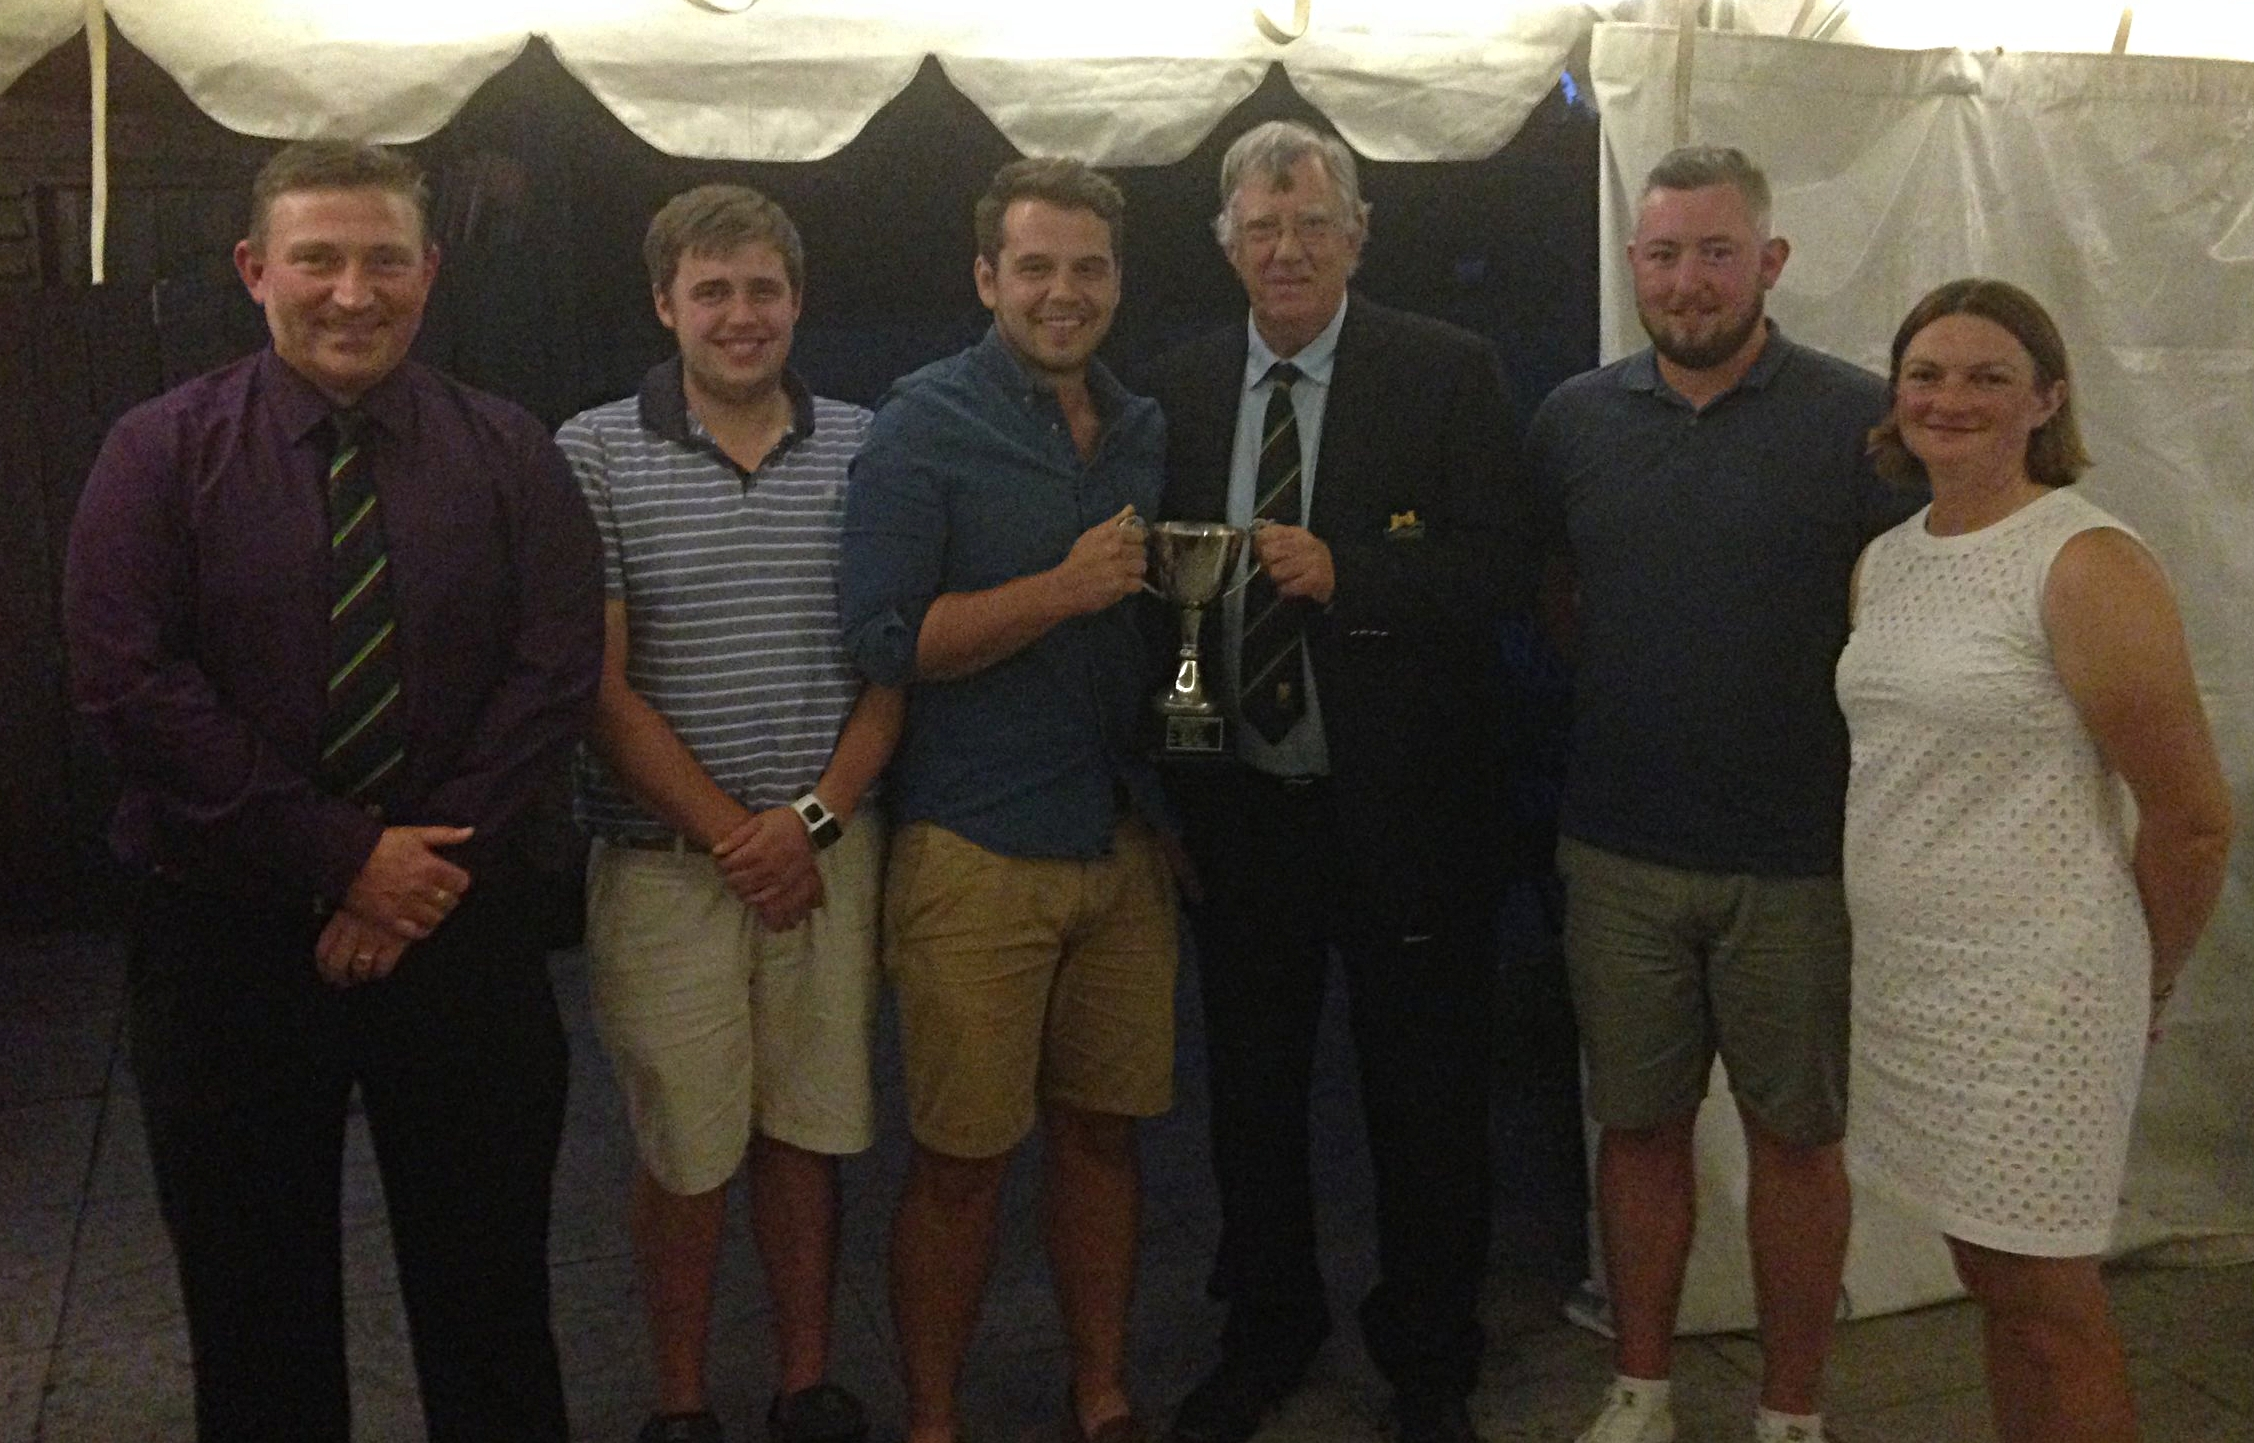 Cumberland Cup winners Tom Mills, Dan Goodwin & Tom Price (Jon Samuel unable to attend) alongside Roger Cumberland (Trophy donor), Chris Offa (Club Captain), Sherrie Edwards (Lady Captain)